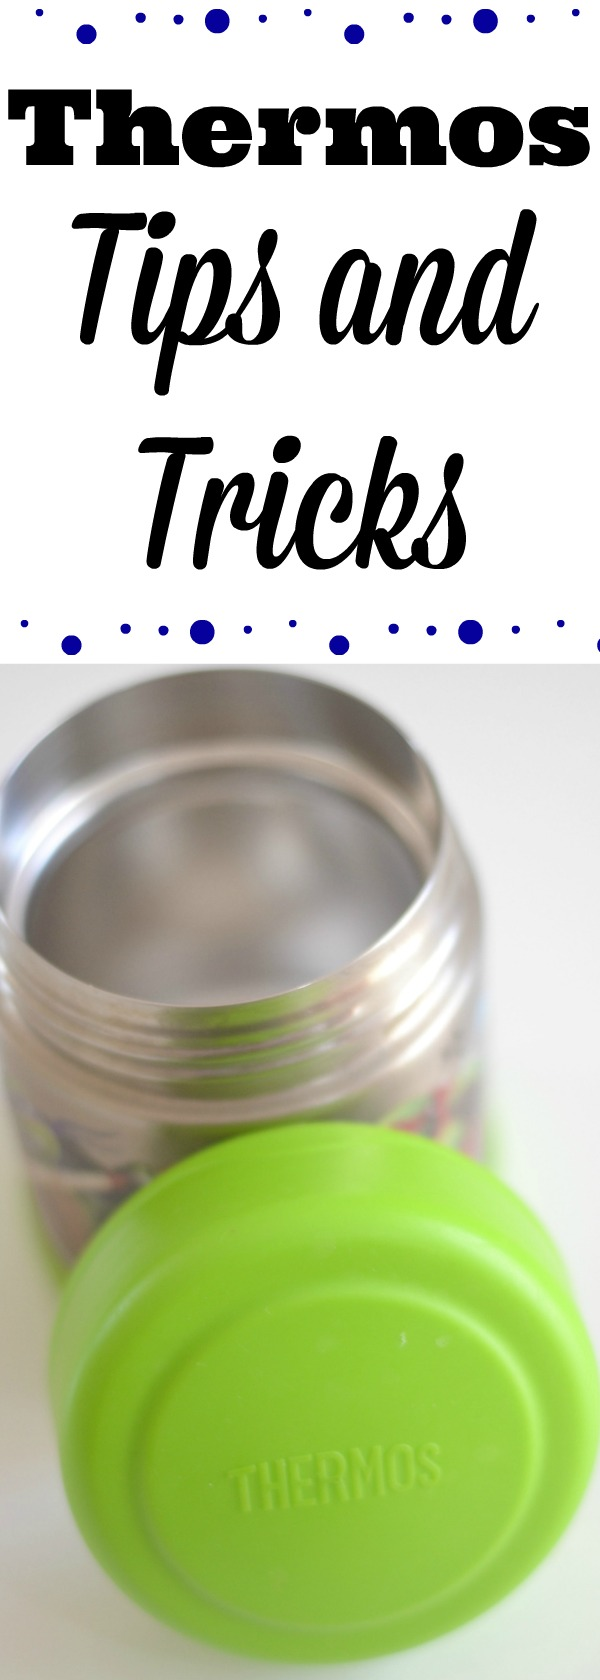 how to use a thermos, Thermos tips and tricks, packing a lunch with a thermos, lunch ideas using a thermos, Everyday tips for using a thermos, lunchbox ideas, packing kids lunches